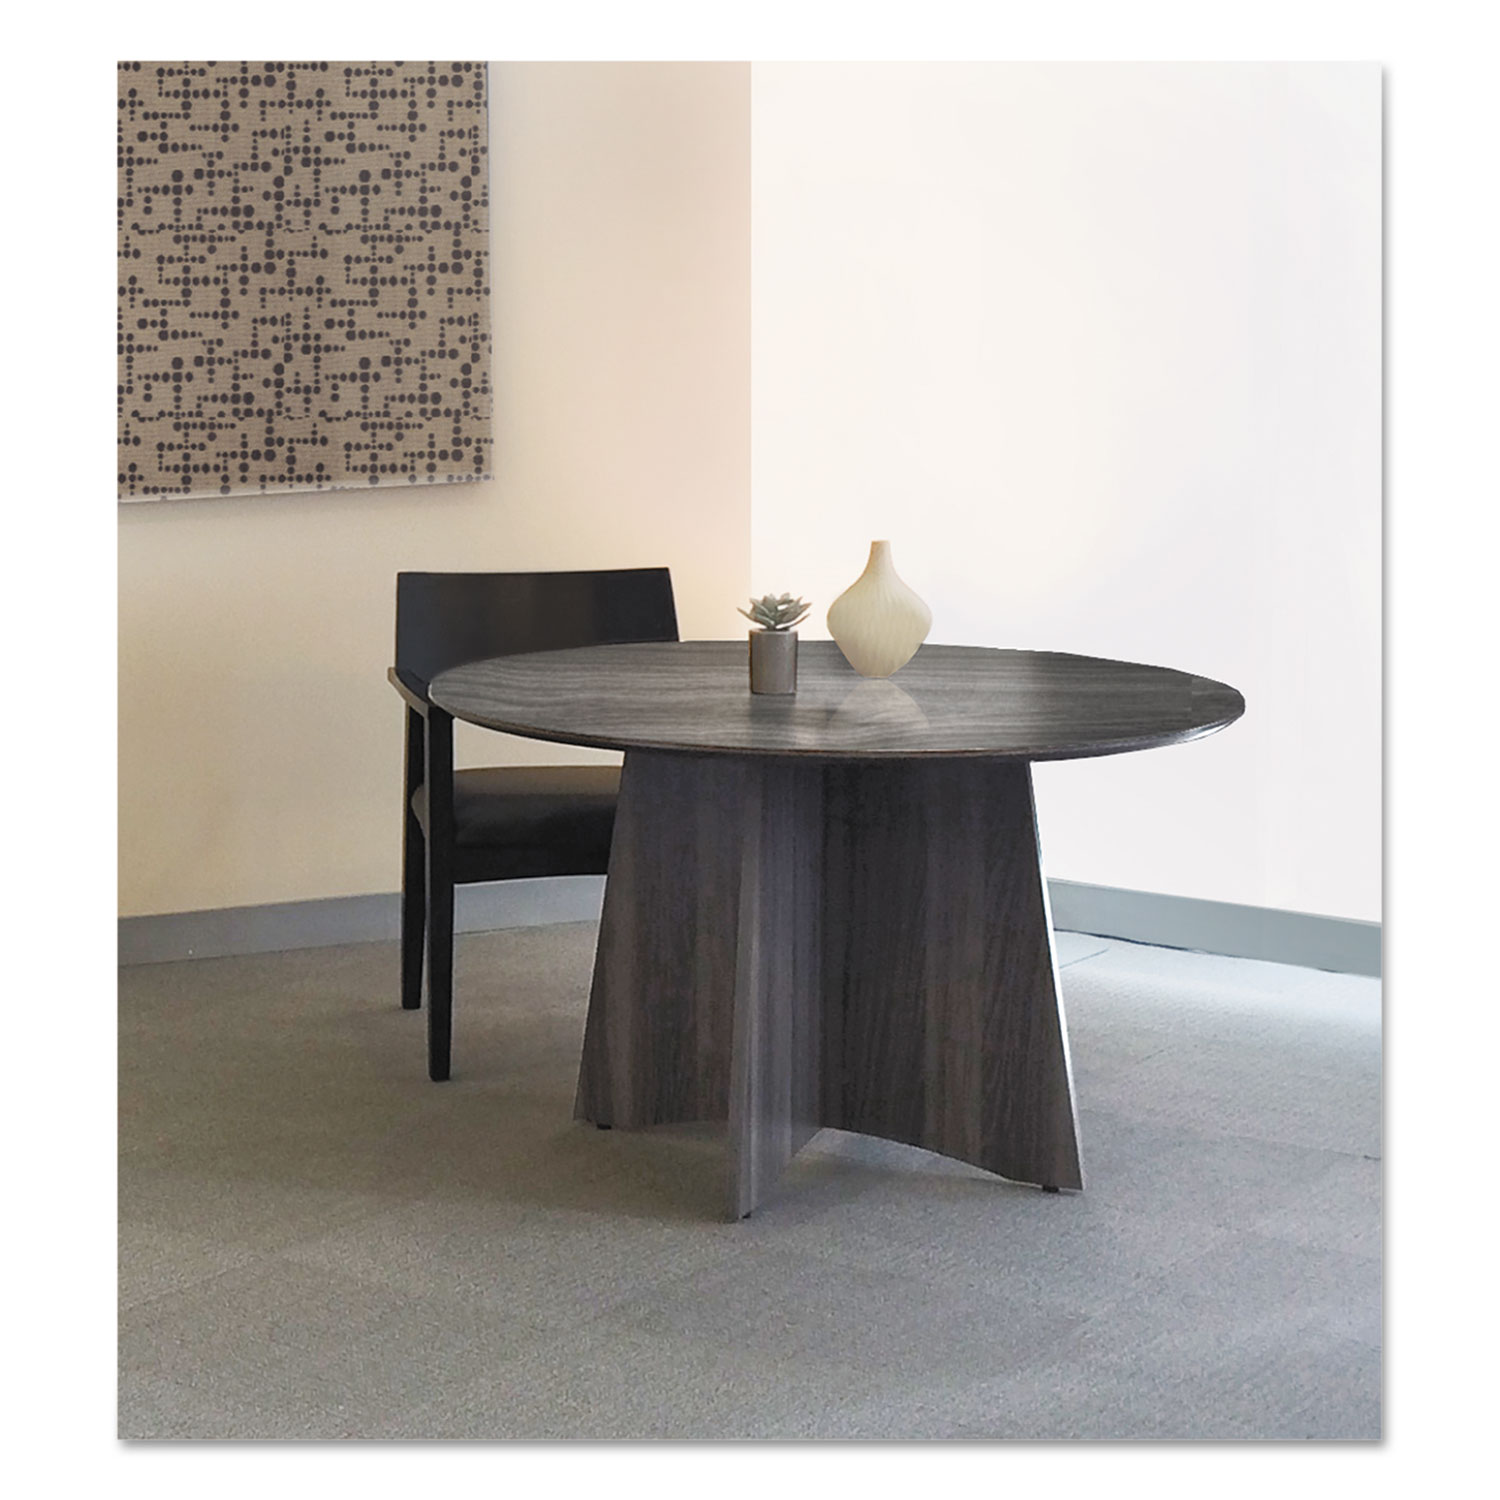 Inch Round Office Table Round Designs - 36 inch round conference table